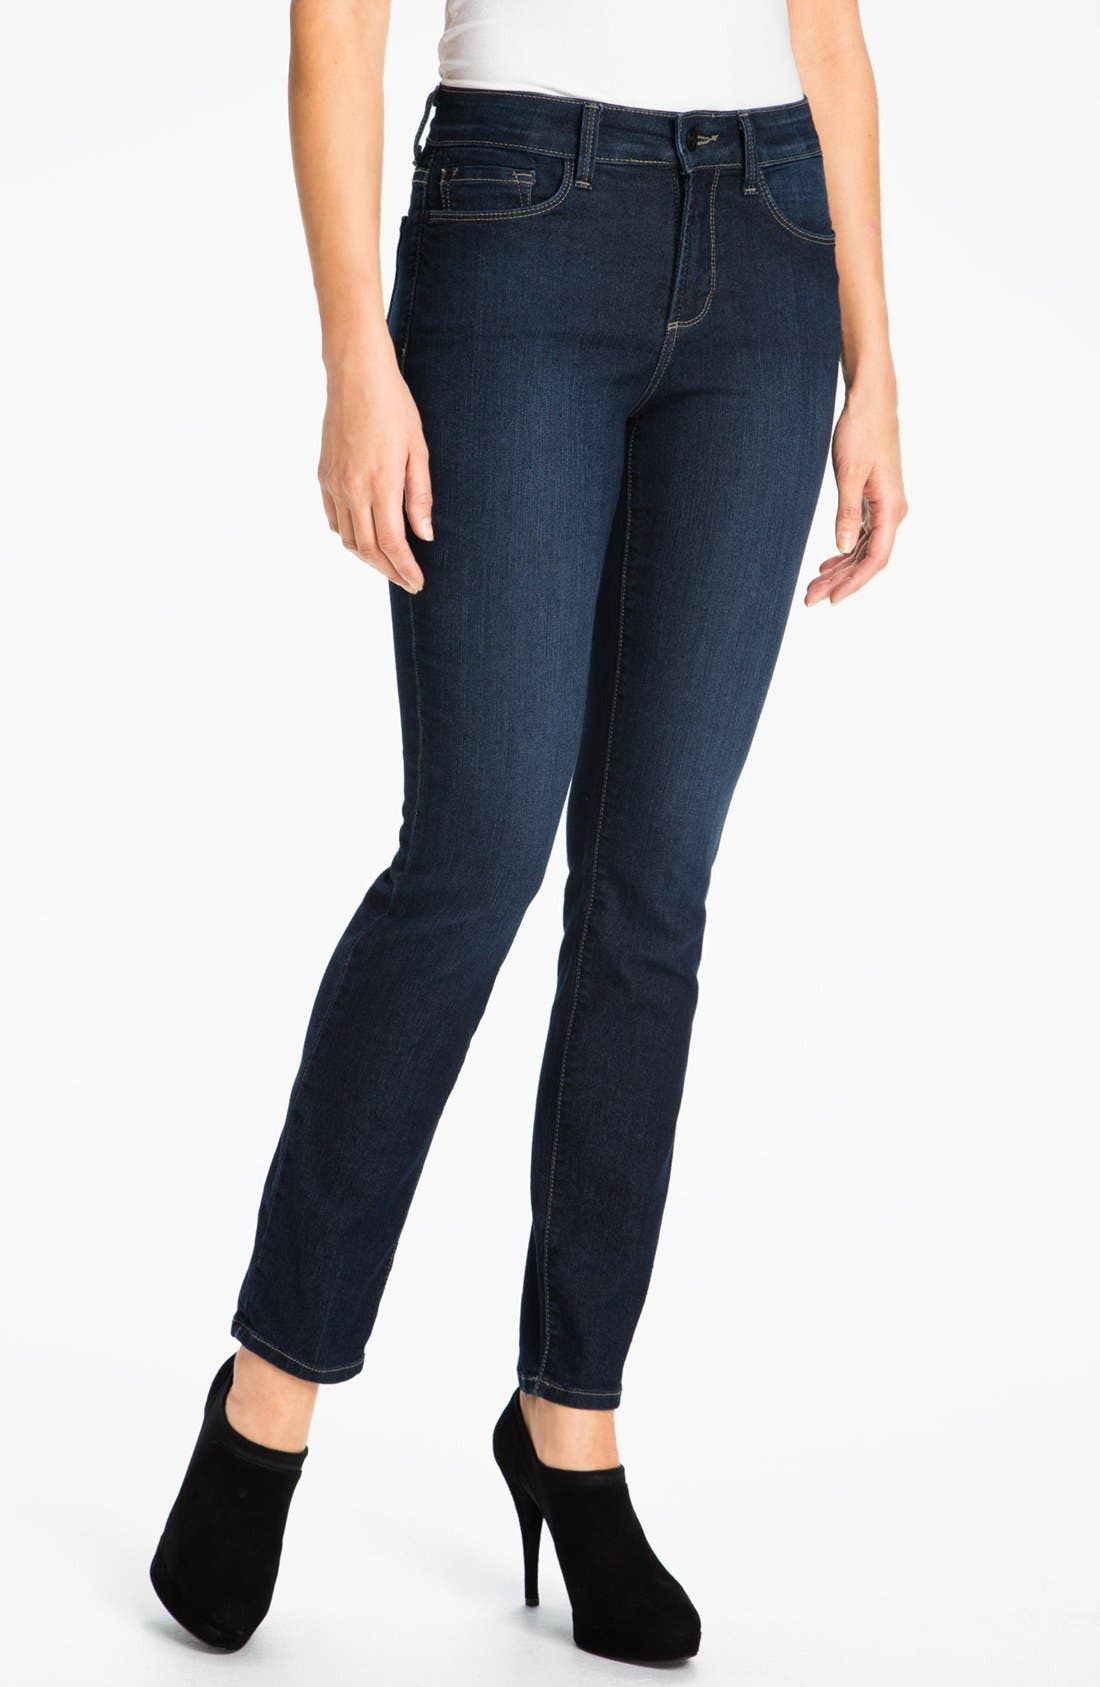 'Alina' Stretch Skinny Jeans,                         Main,                         color, 425